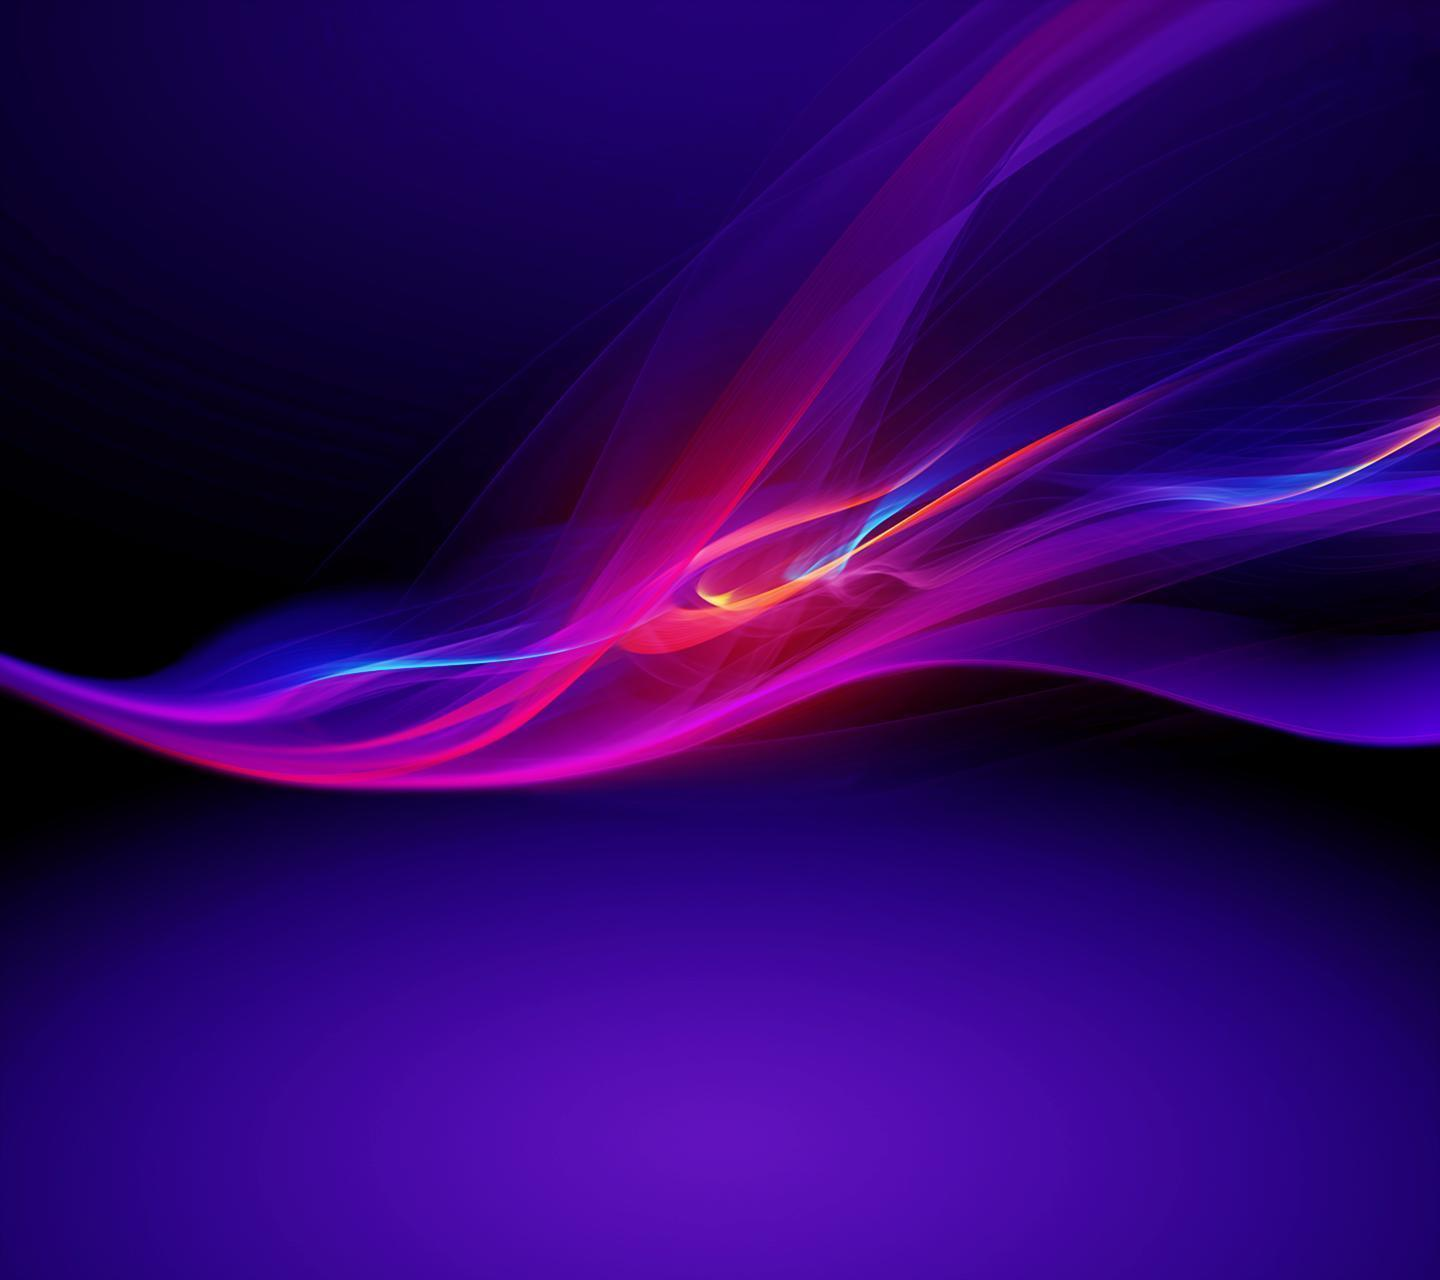 Sony Xperia Wallpapers Group (60+)